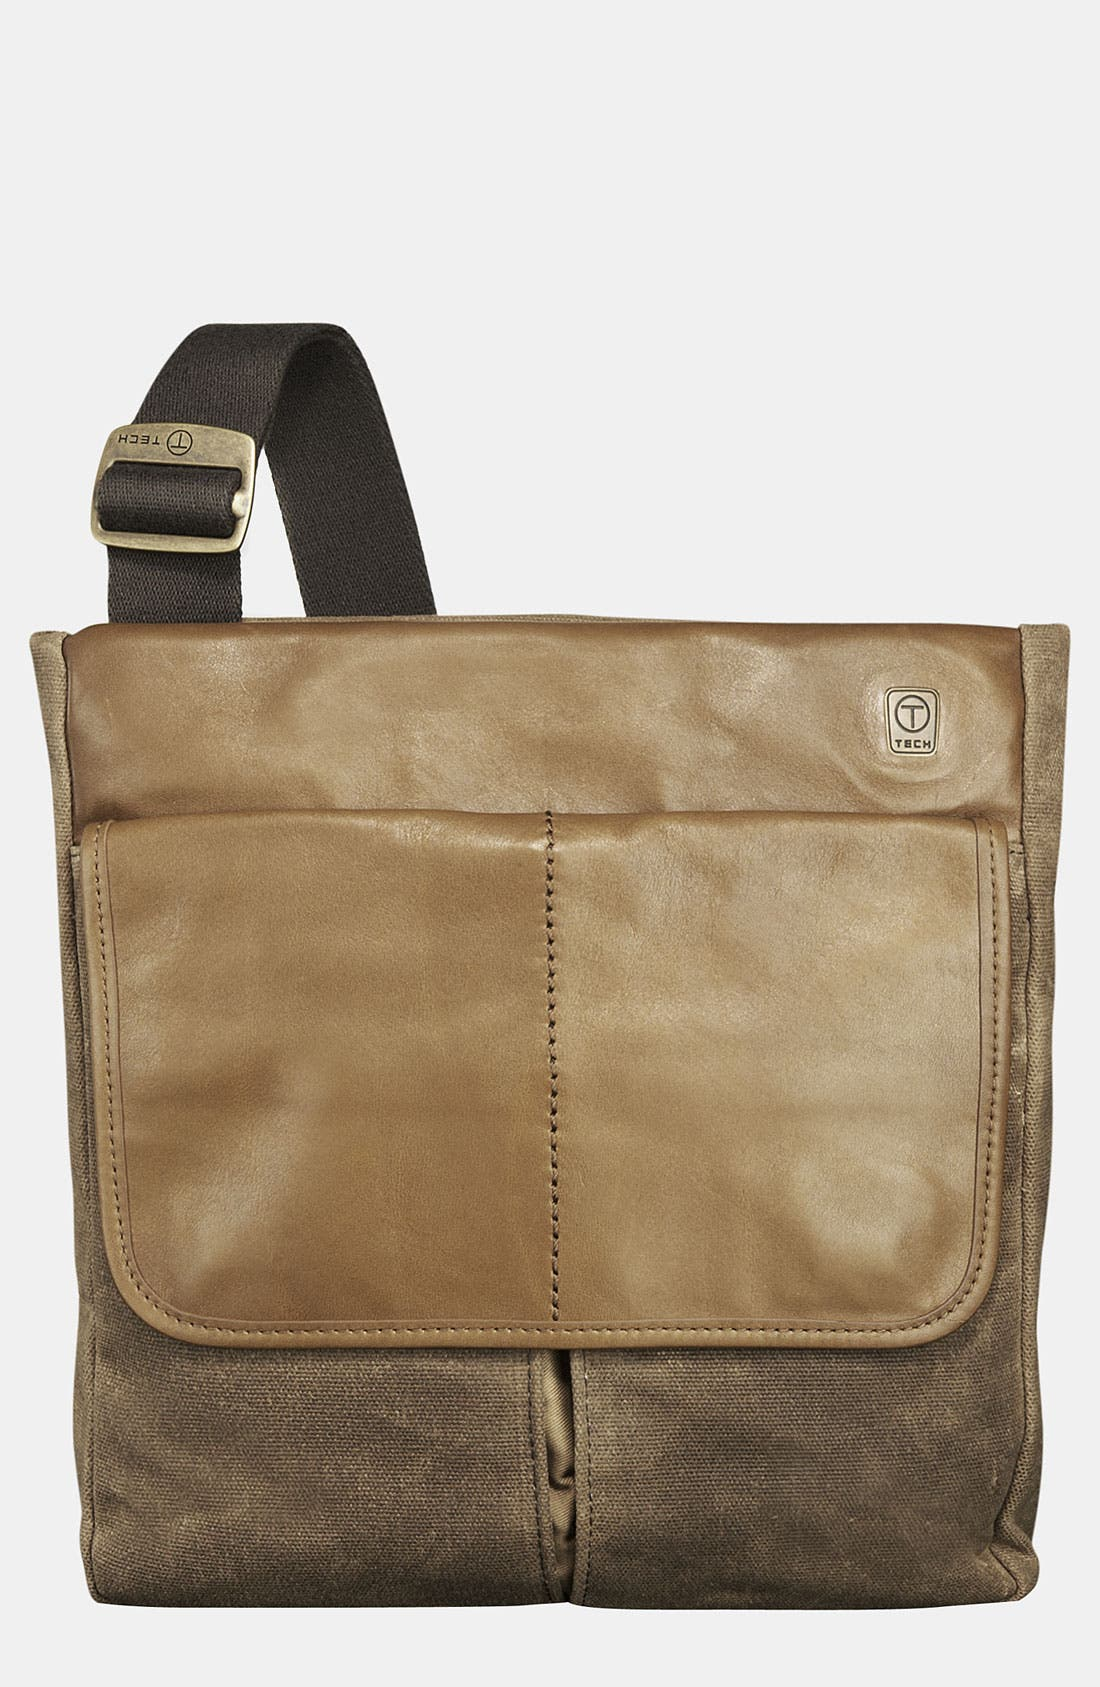 Alternate Image 1 Selected - T-Tech by Tumi 'Forge - Pueblo' Top Zip Flap Bag